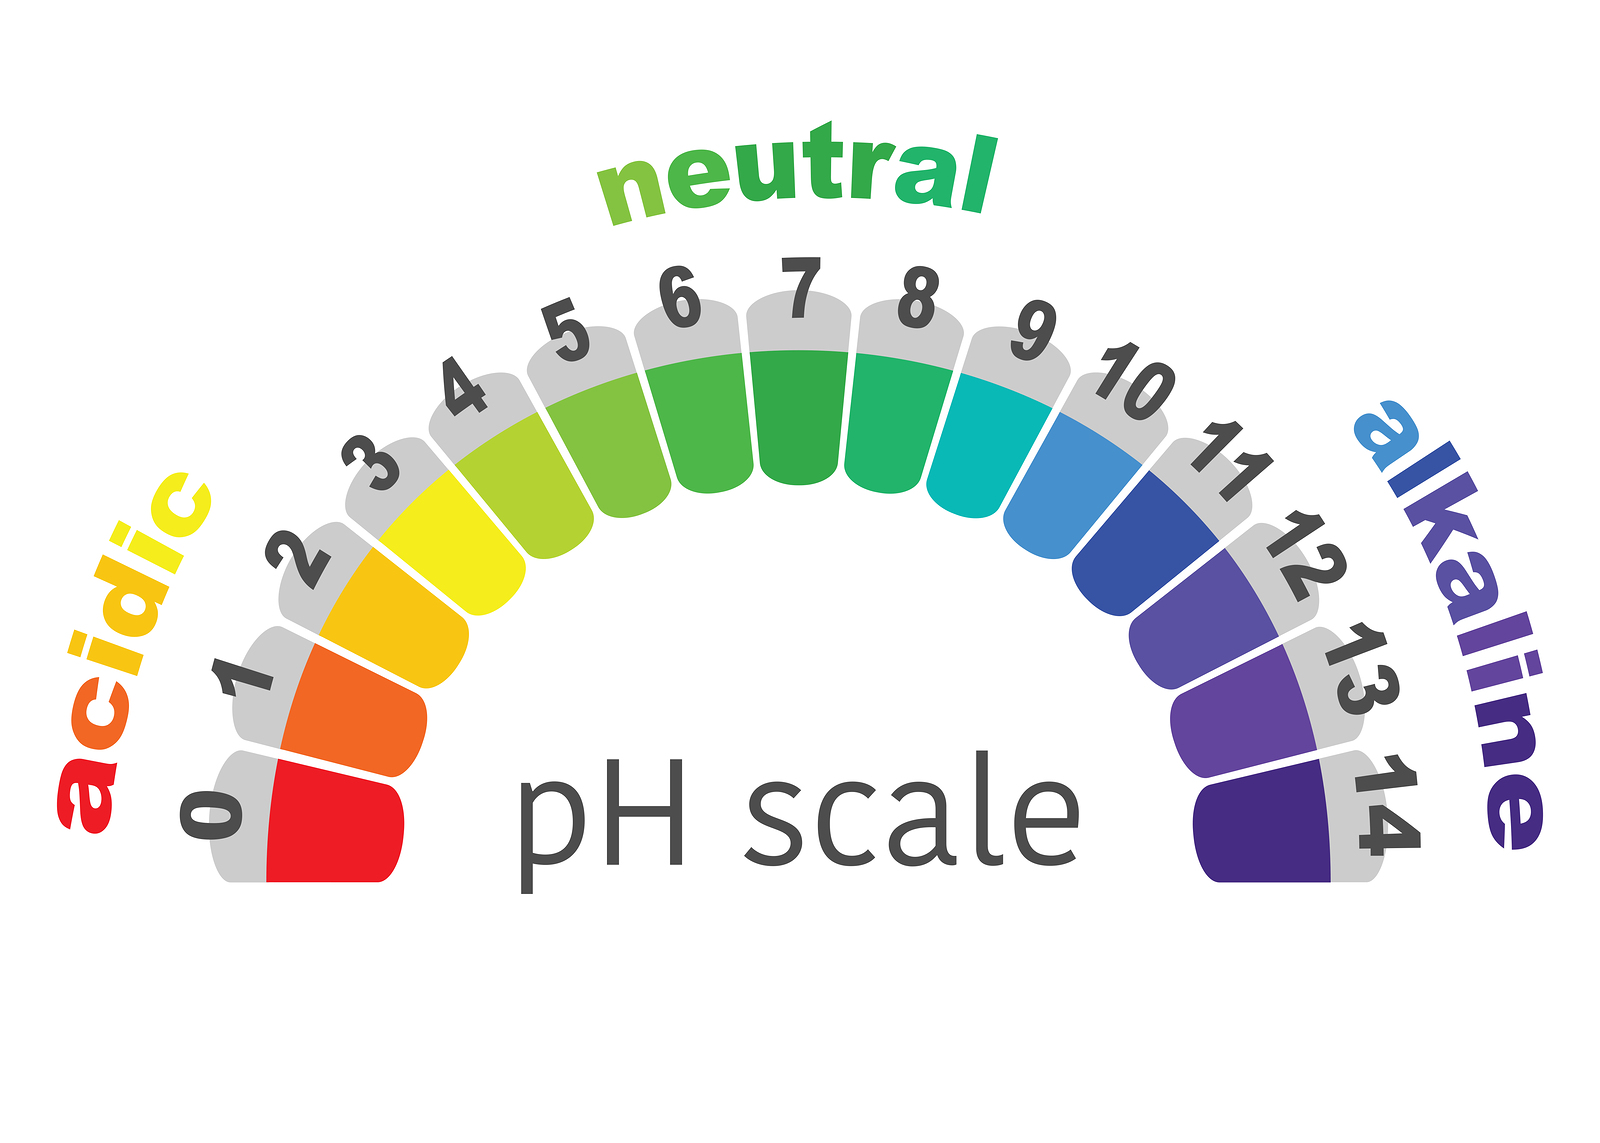 Acid, neutral and alkaline pH scale